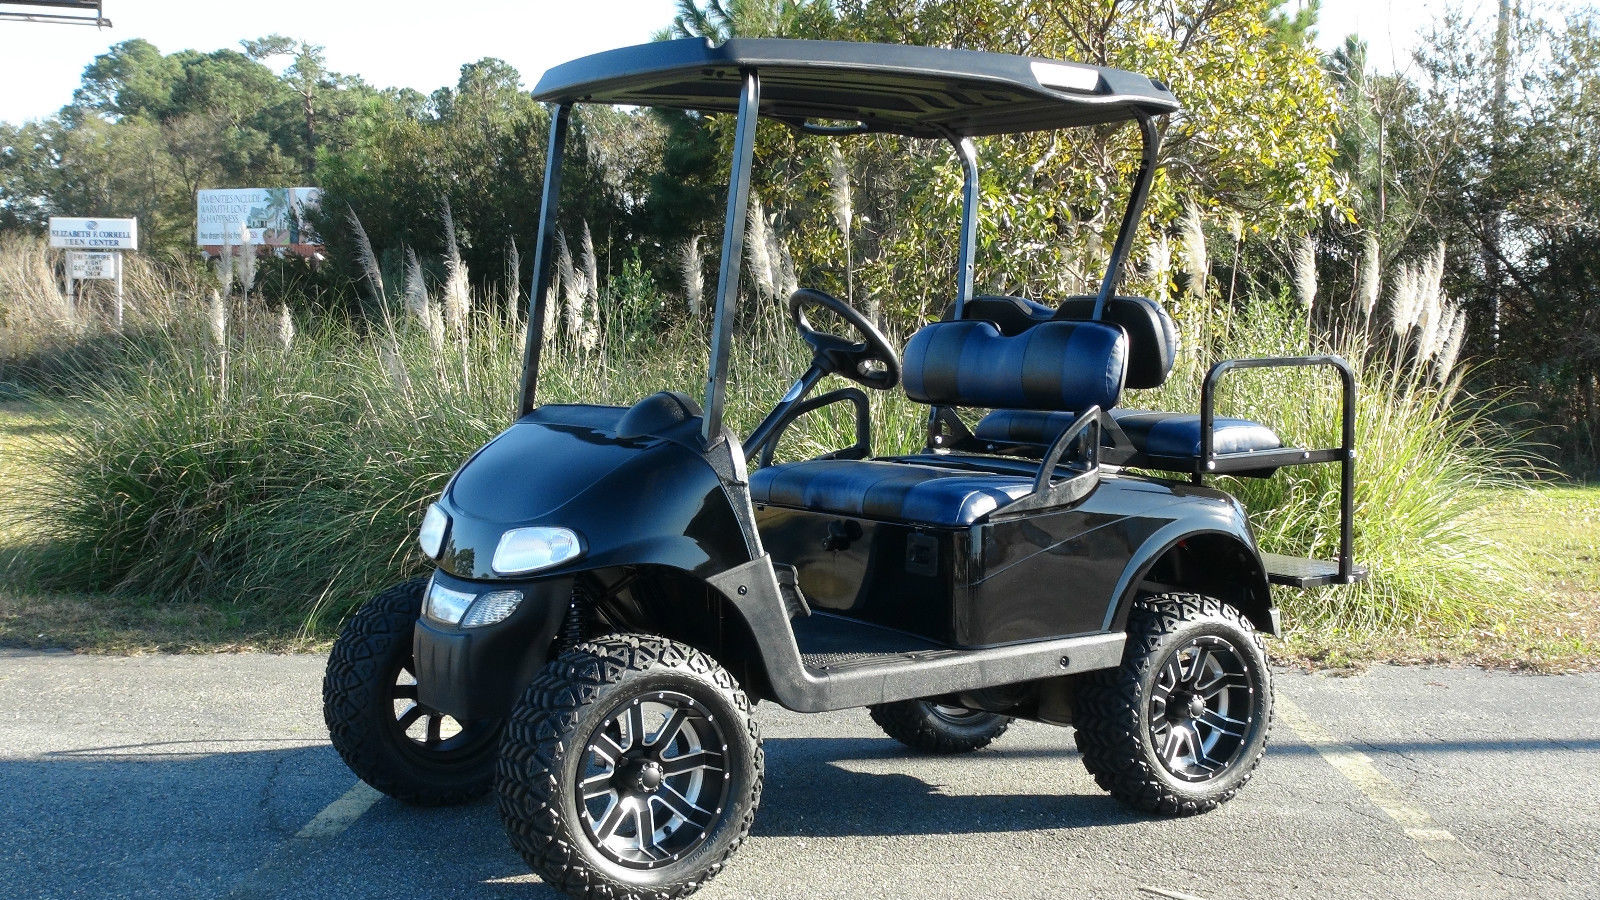 Ezgo Rxv Gas Golf Cart Refurbished Custom 4 Passenger